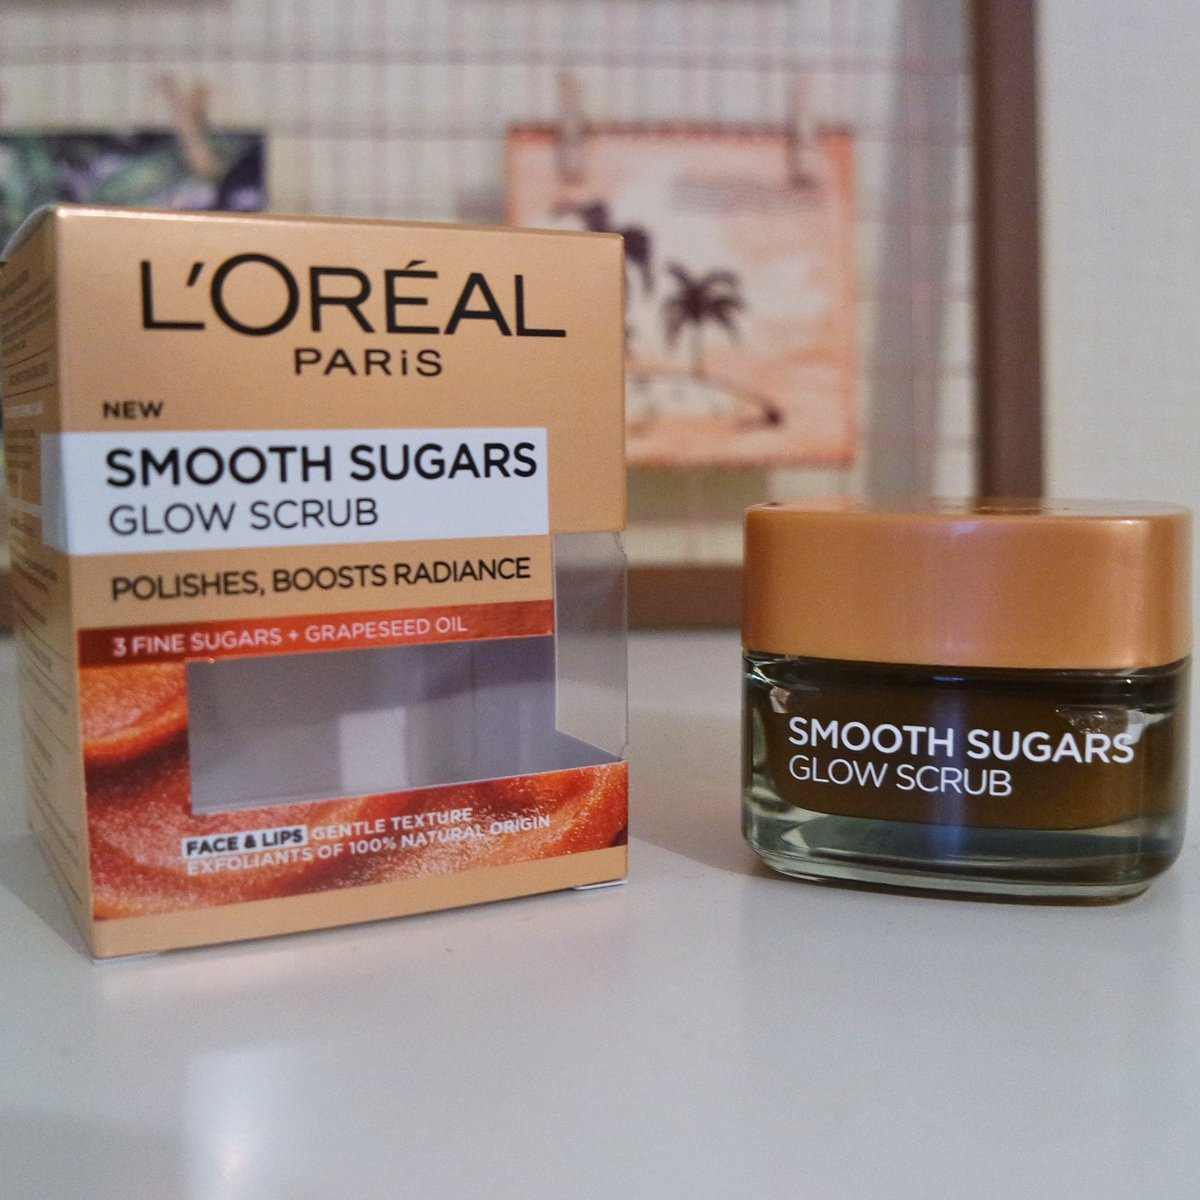 Hey Guys! Check out my first impressions and review of L'Oreal's Smooth Sugar Glow Scrub https://t.co/7myt45KQGh #Loreal #firstimpressions #review #beautyreview #sugarscrub #exfoliate #beauty #beautyblogger #bblogger #bbloggers #blogger https://t.co/njqeB13HcB